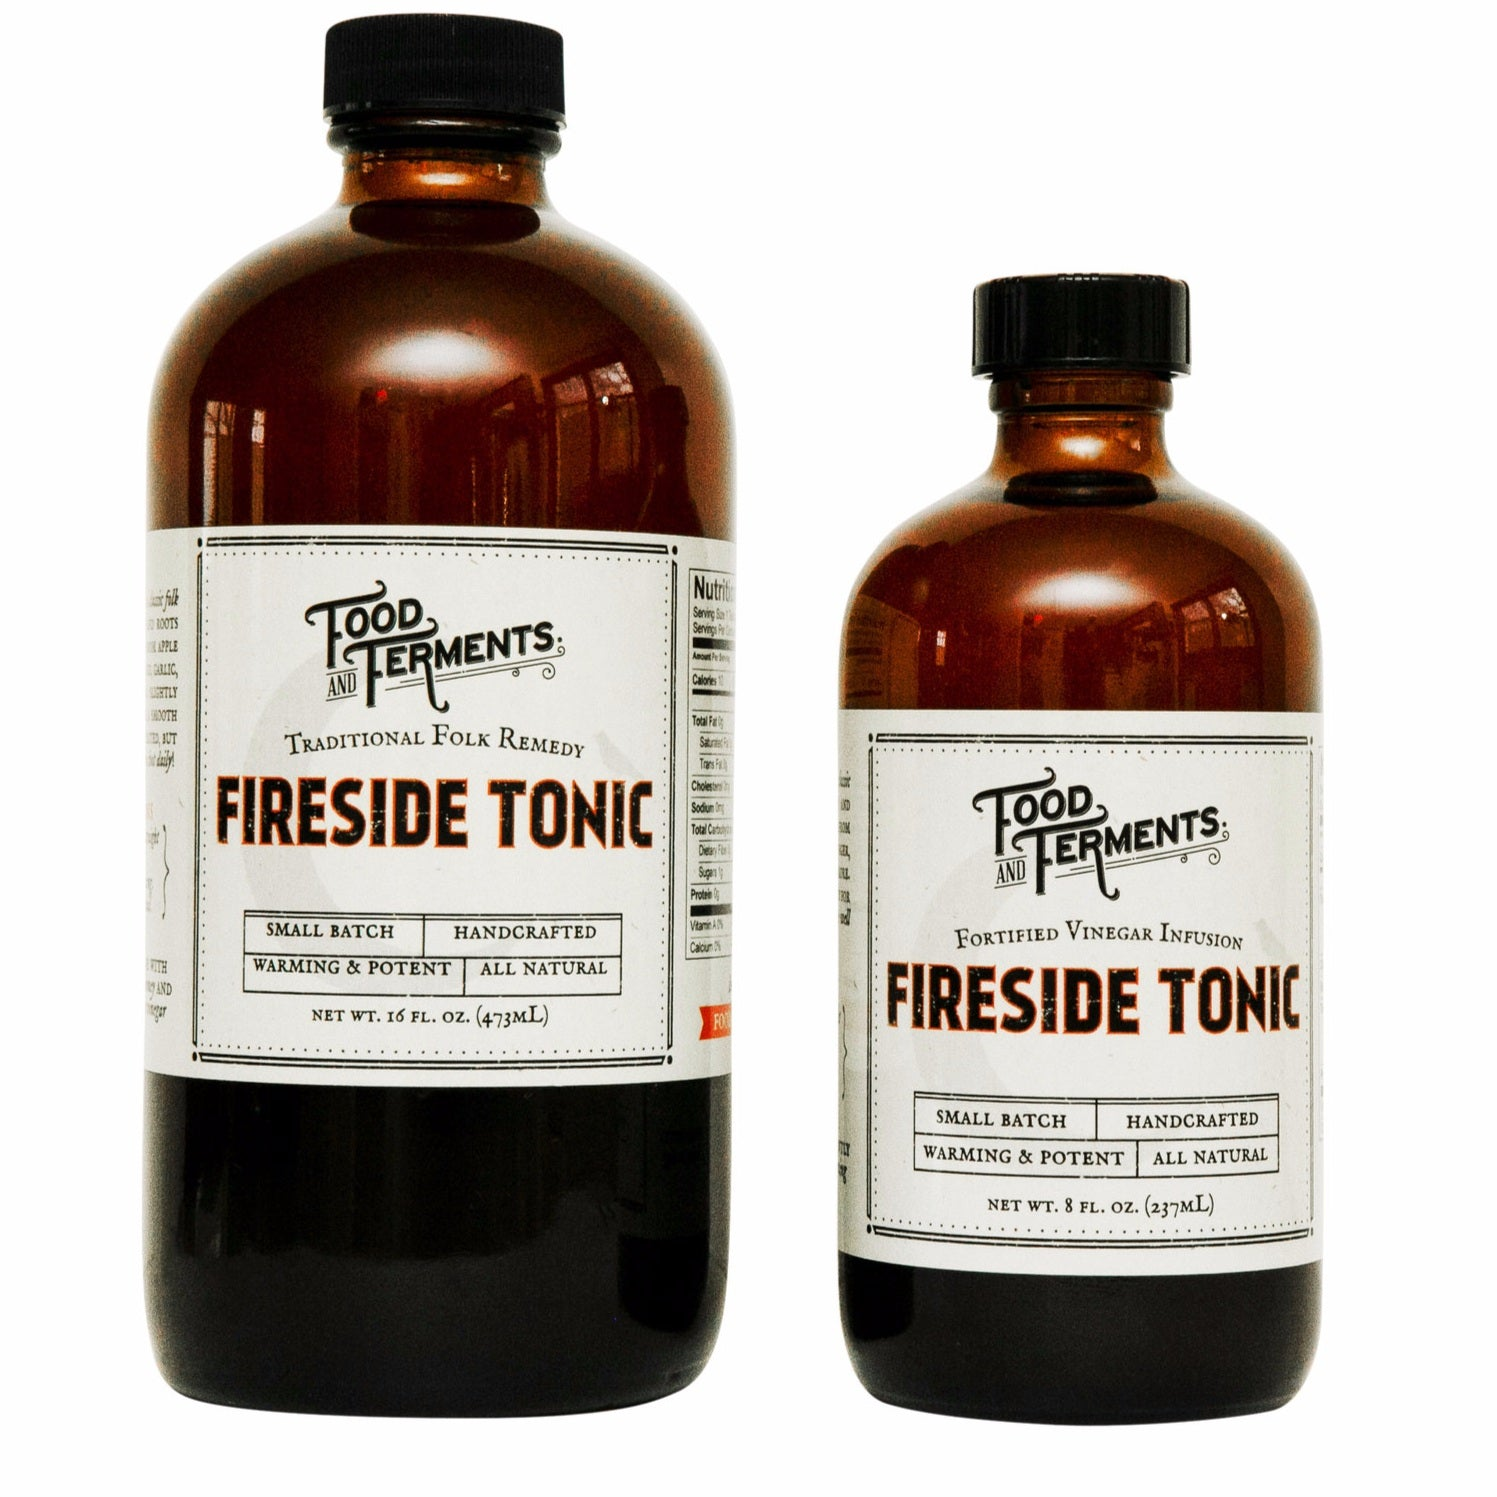 Fireside Tonic (8oz)